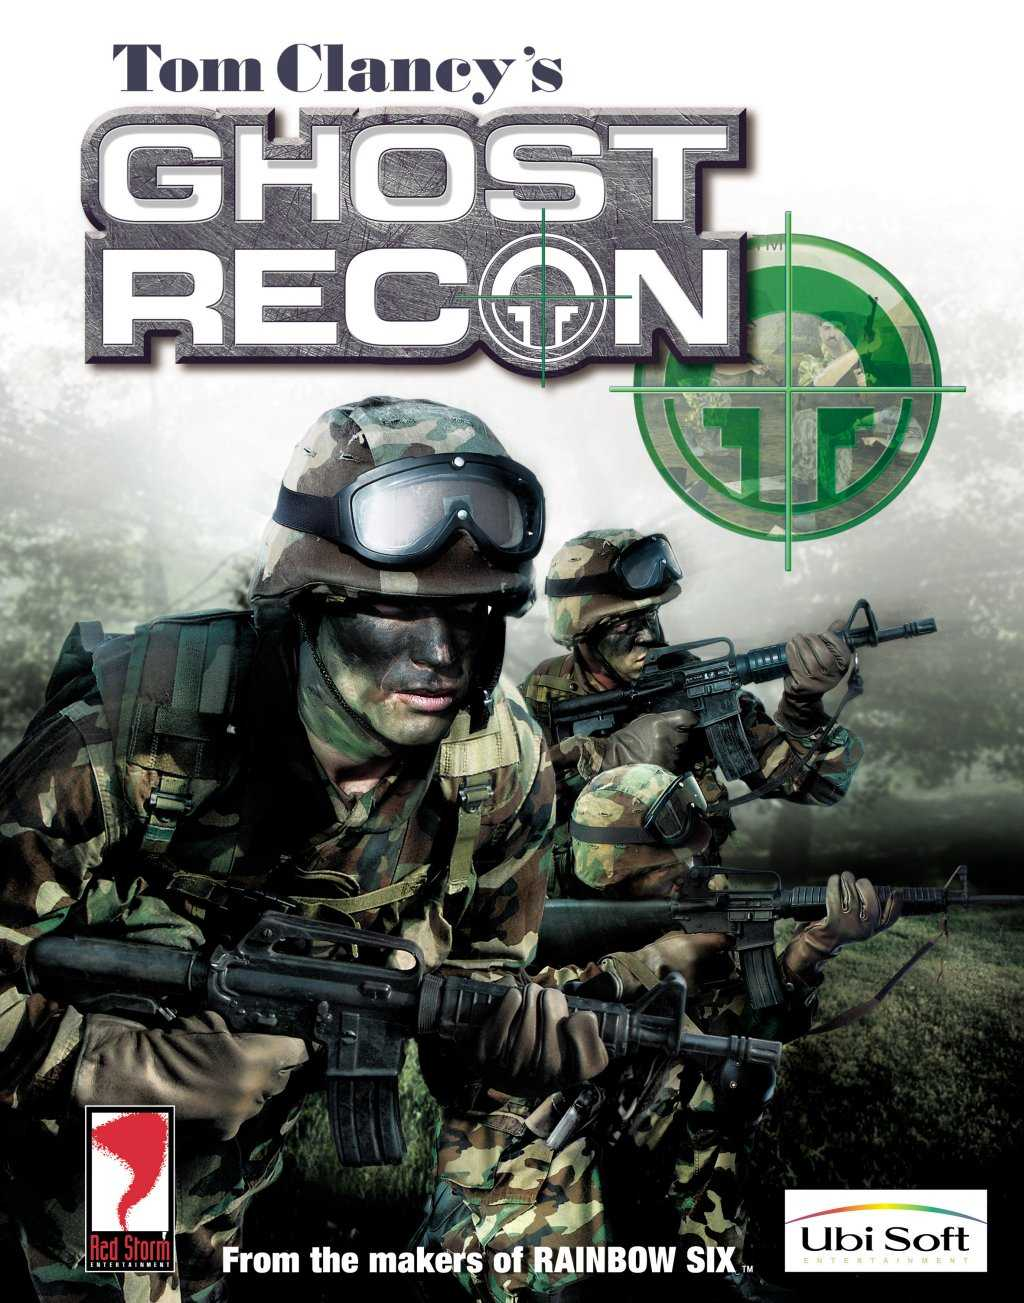 Tom Clancy's Ghost Recon (Game) | Ghost Recon Wiki | FANDOM powered